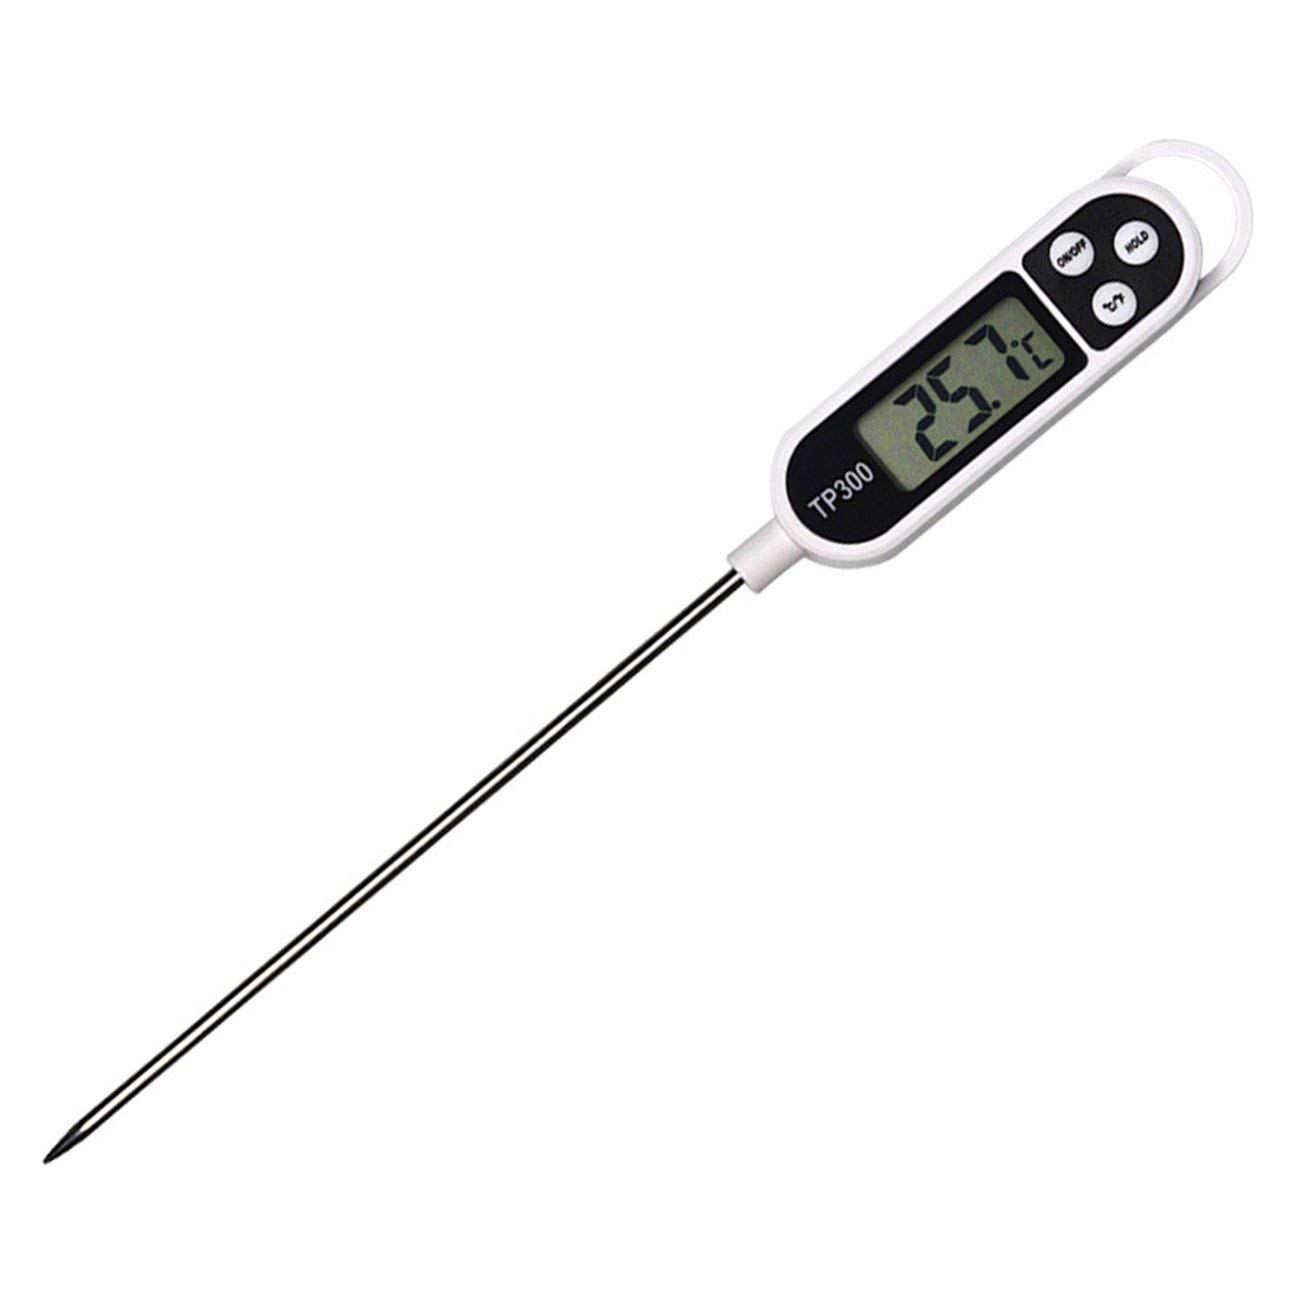 Liobaba High Accuracy Stainless Steel Household Kitchen Food Meat Probe Thermometer Home Cooking Temperature Measure Tool